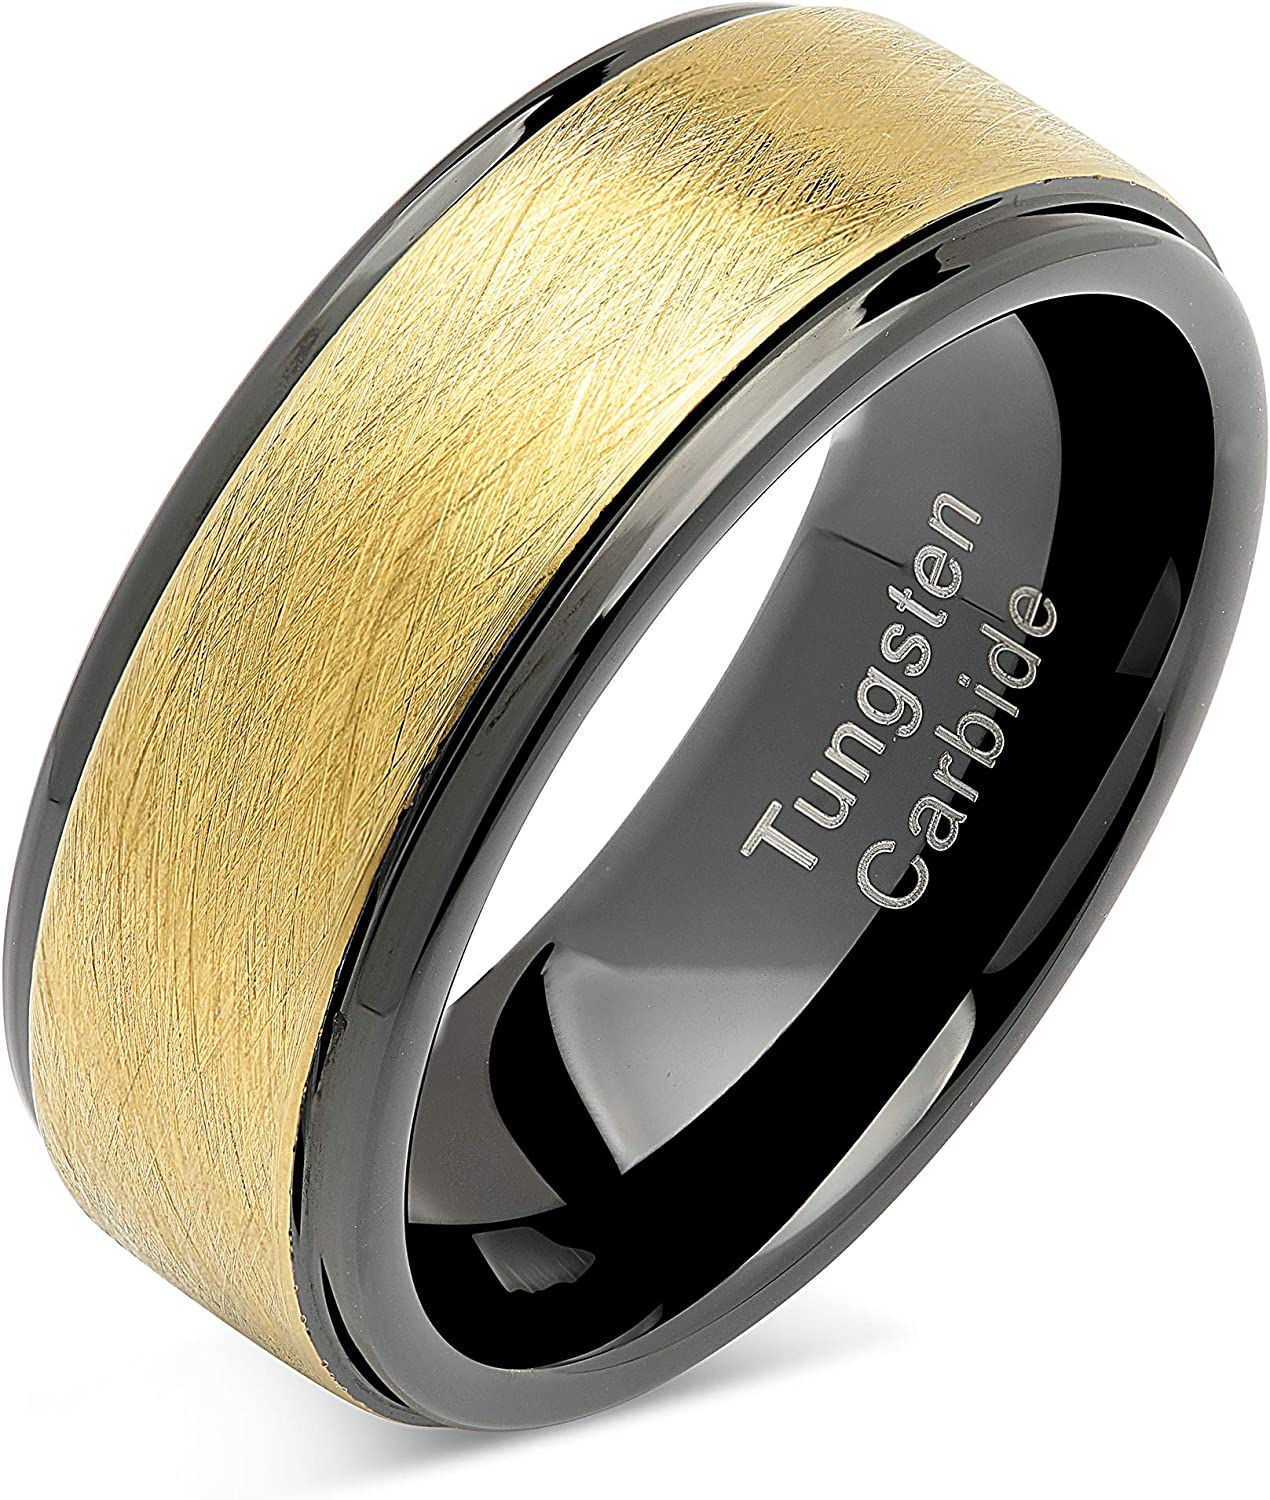 100S JEWELRY Tungsten Rings for Men Wedding Band Two Tone Black Gold Wire Brushed Size 8-16